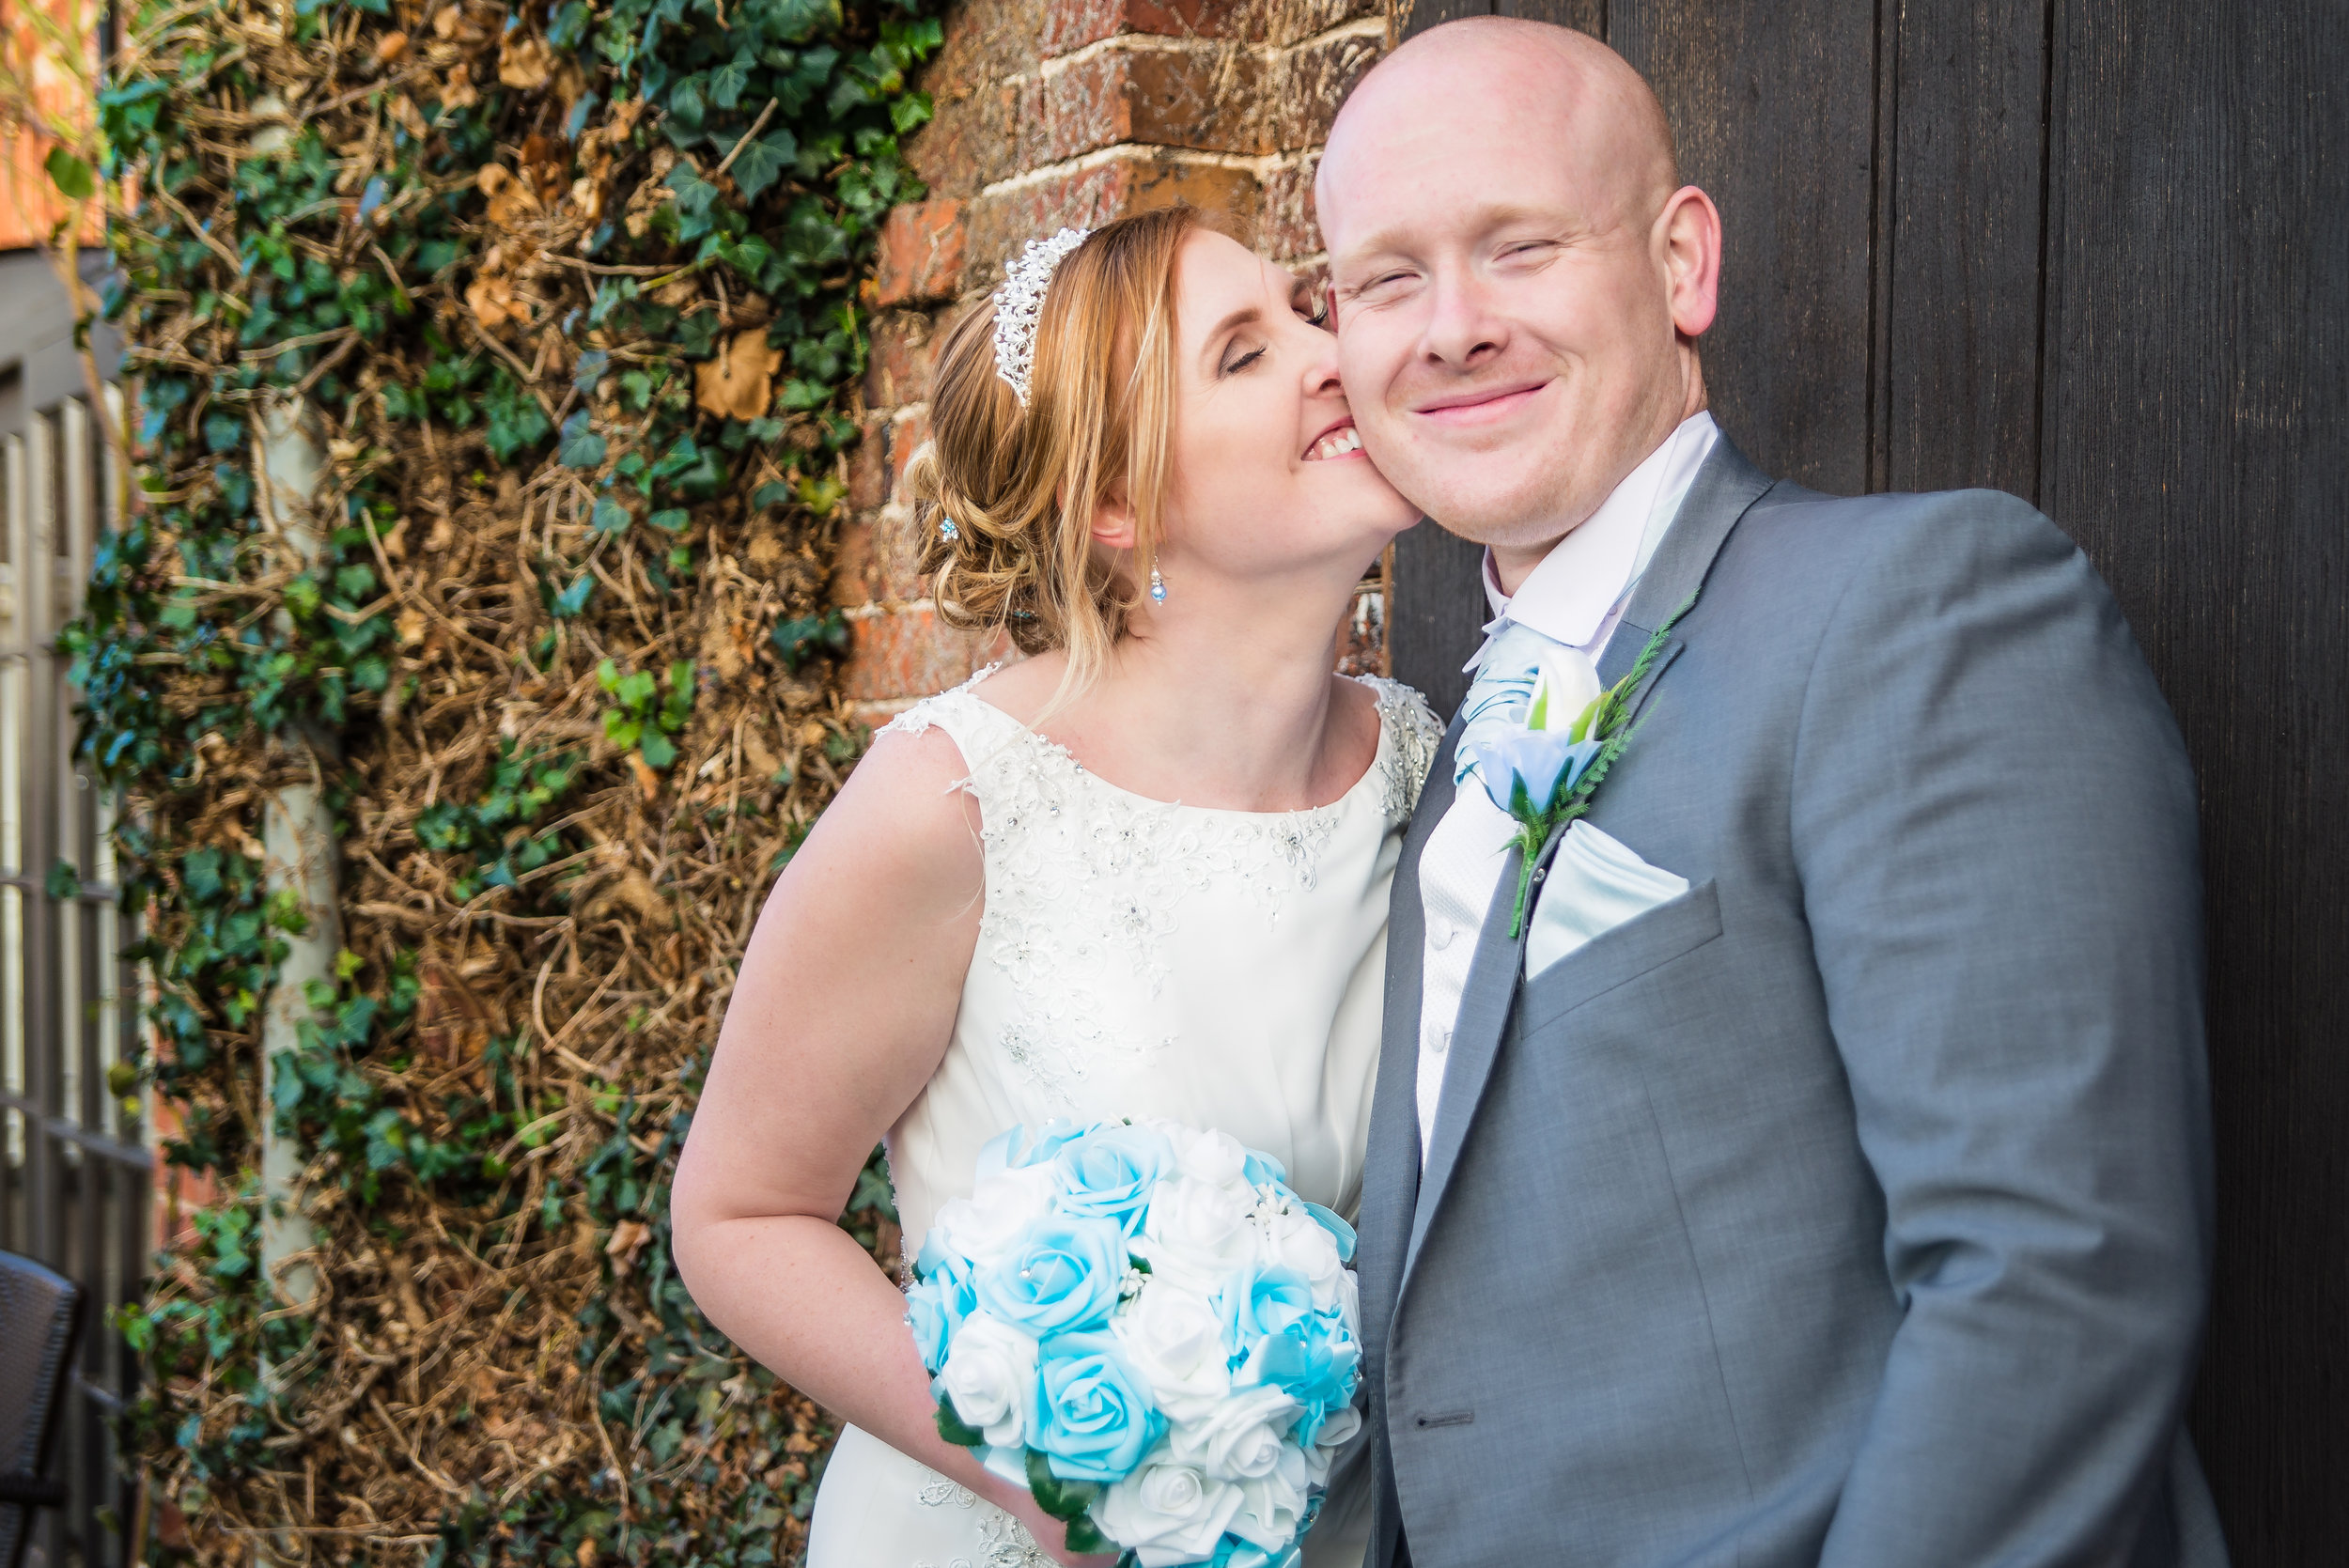 Wedding photography shropshire